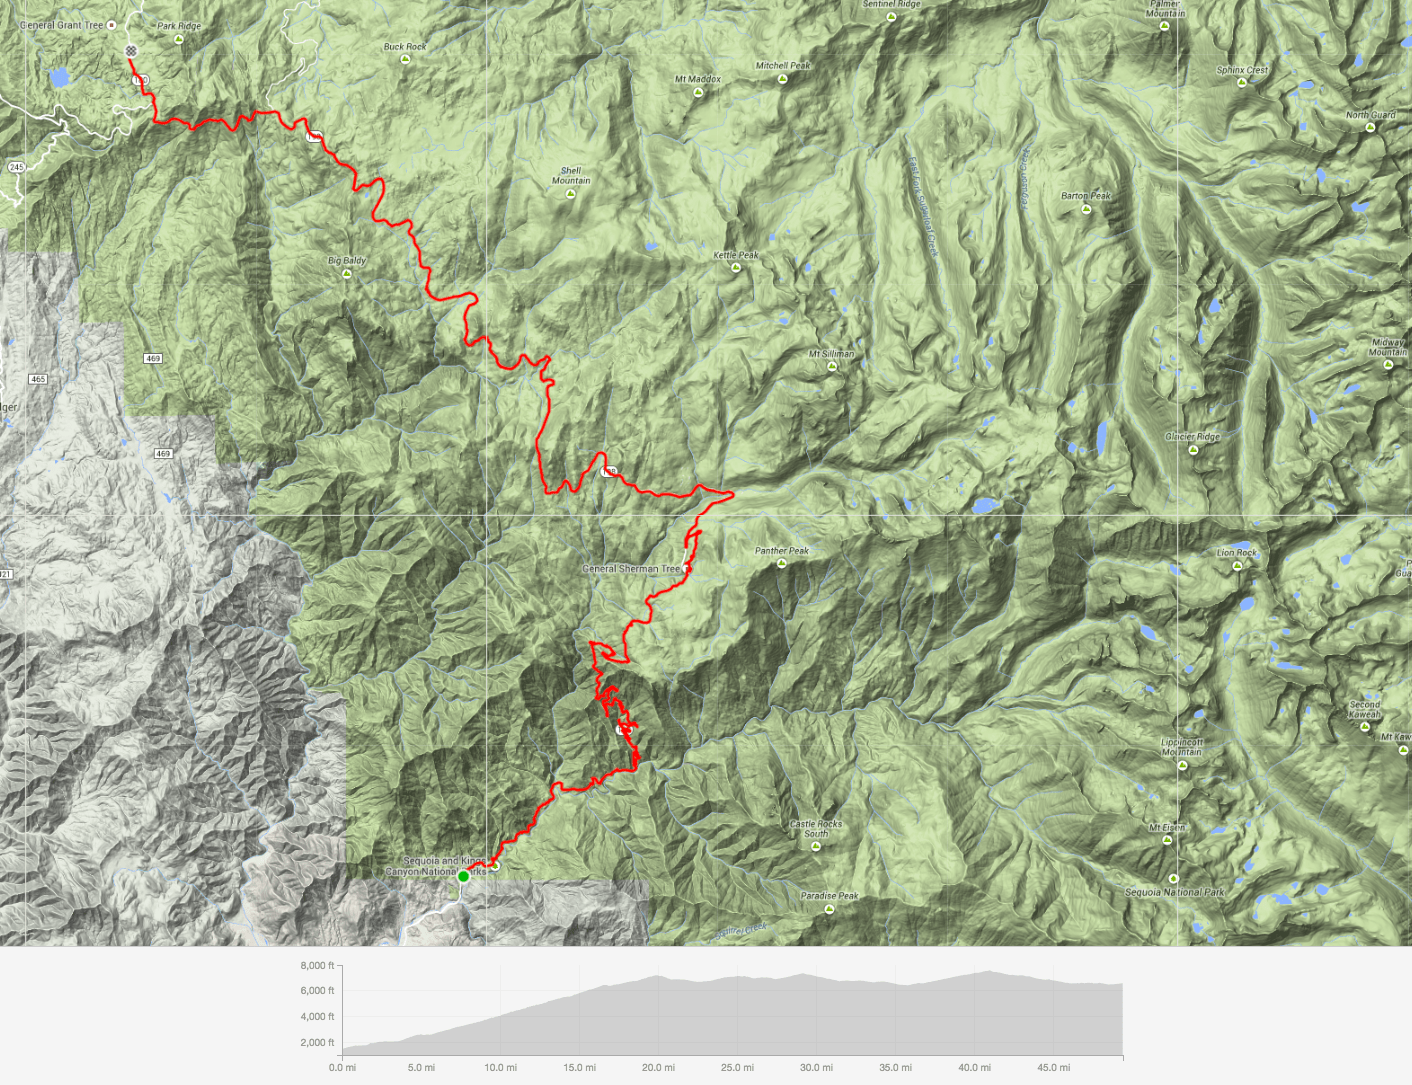 Strava Sequoia Kings Canyon